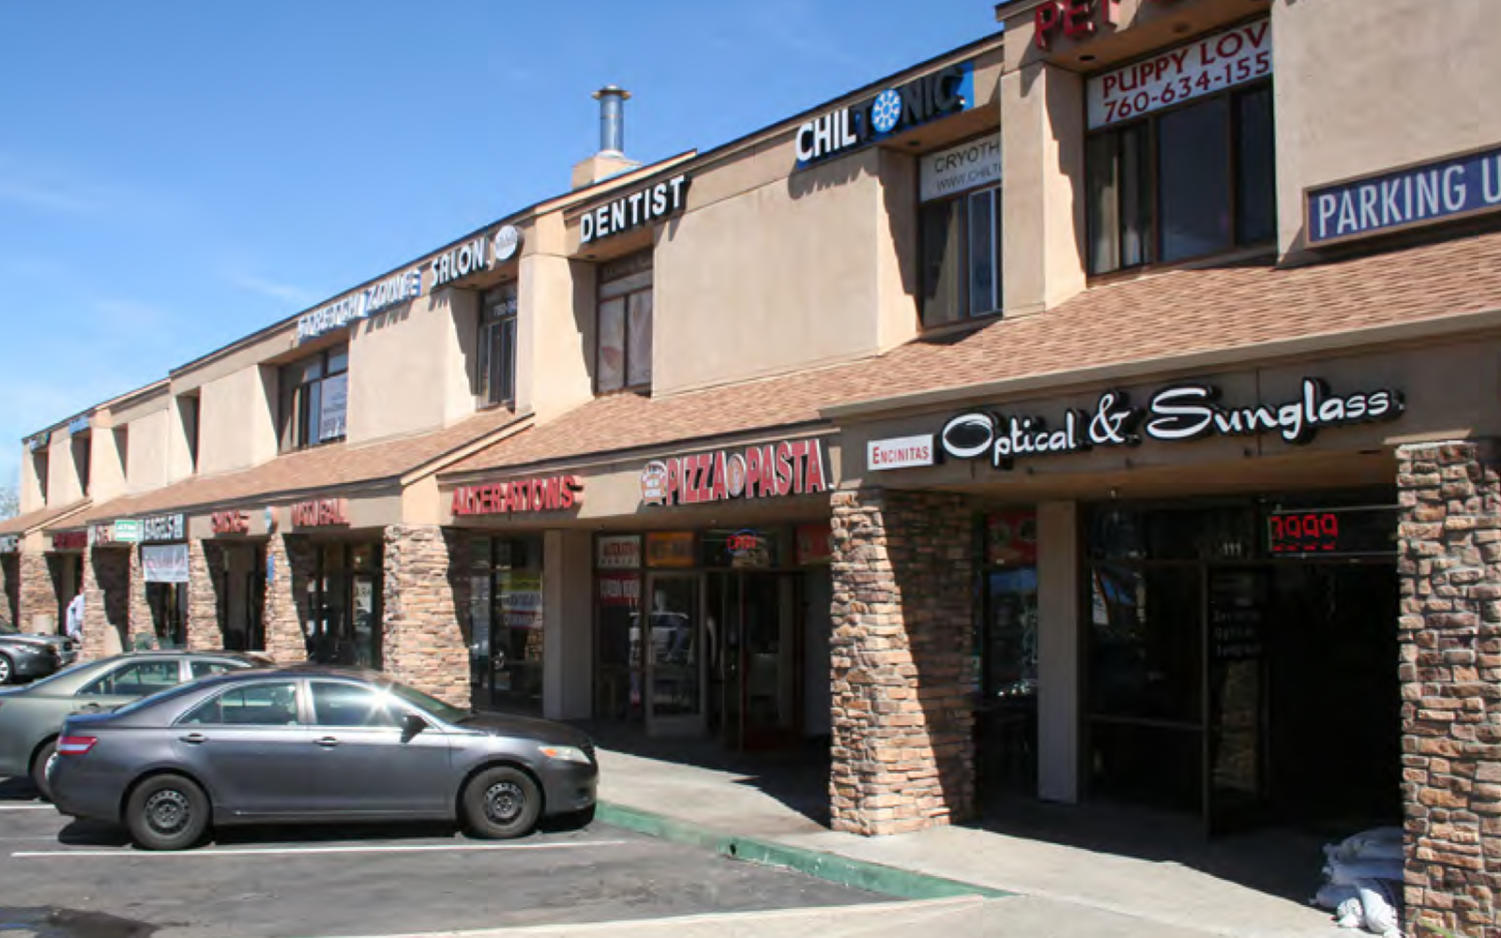 El Camino Square, located in Encinitas, recently sold for $12.2 million. The commercial center is home to longtime local eateries such as Chick's Natural and Garden State Bagels. (Colliers International photo)